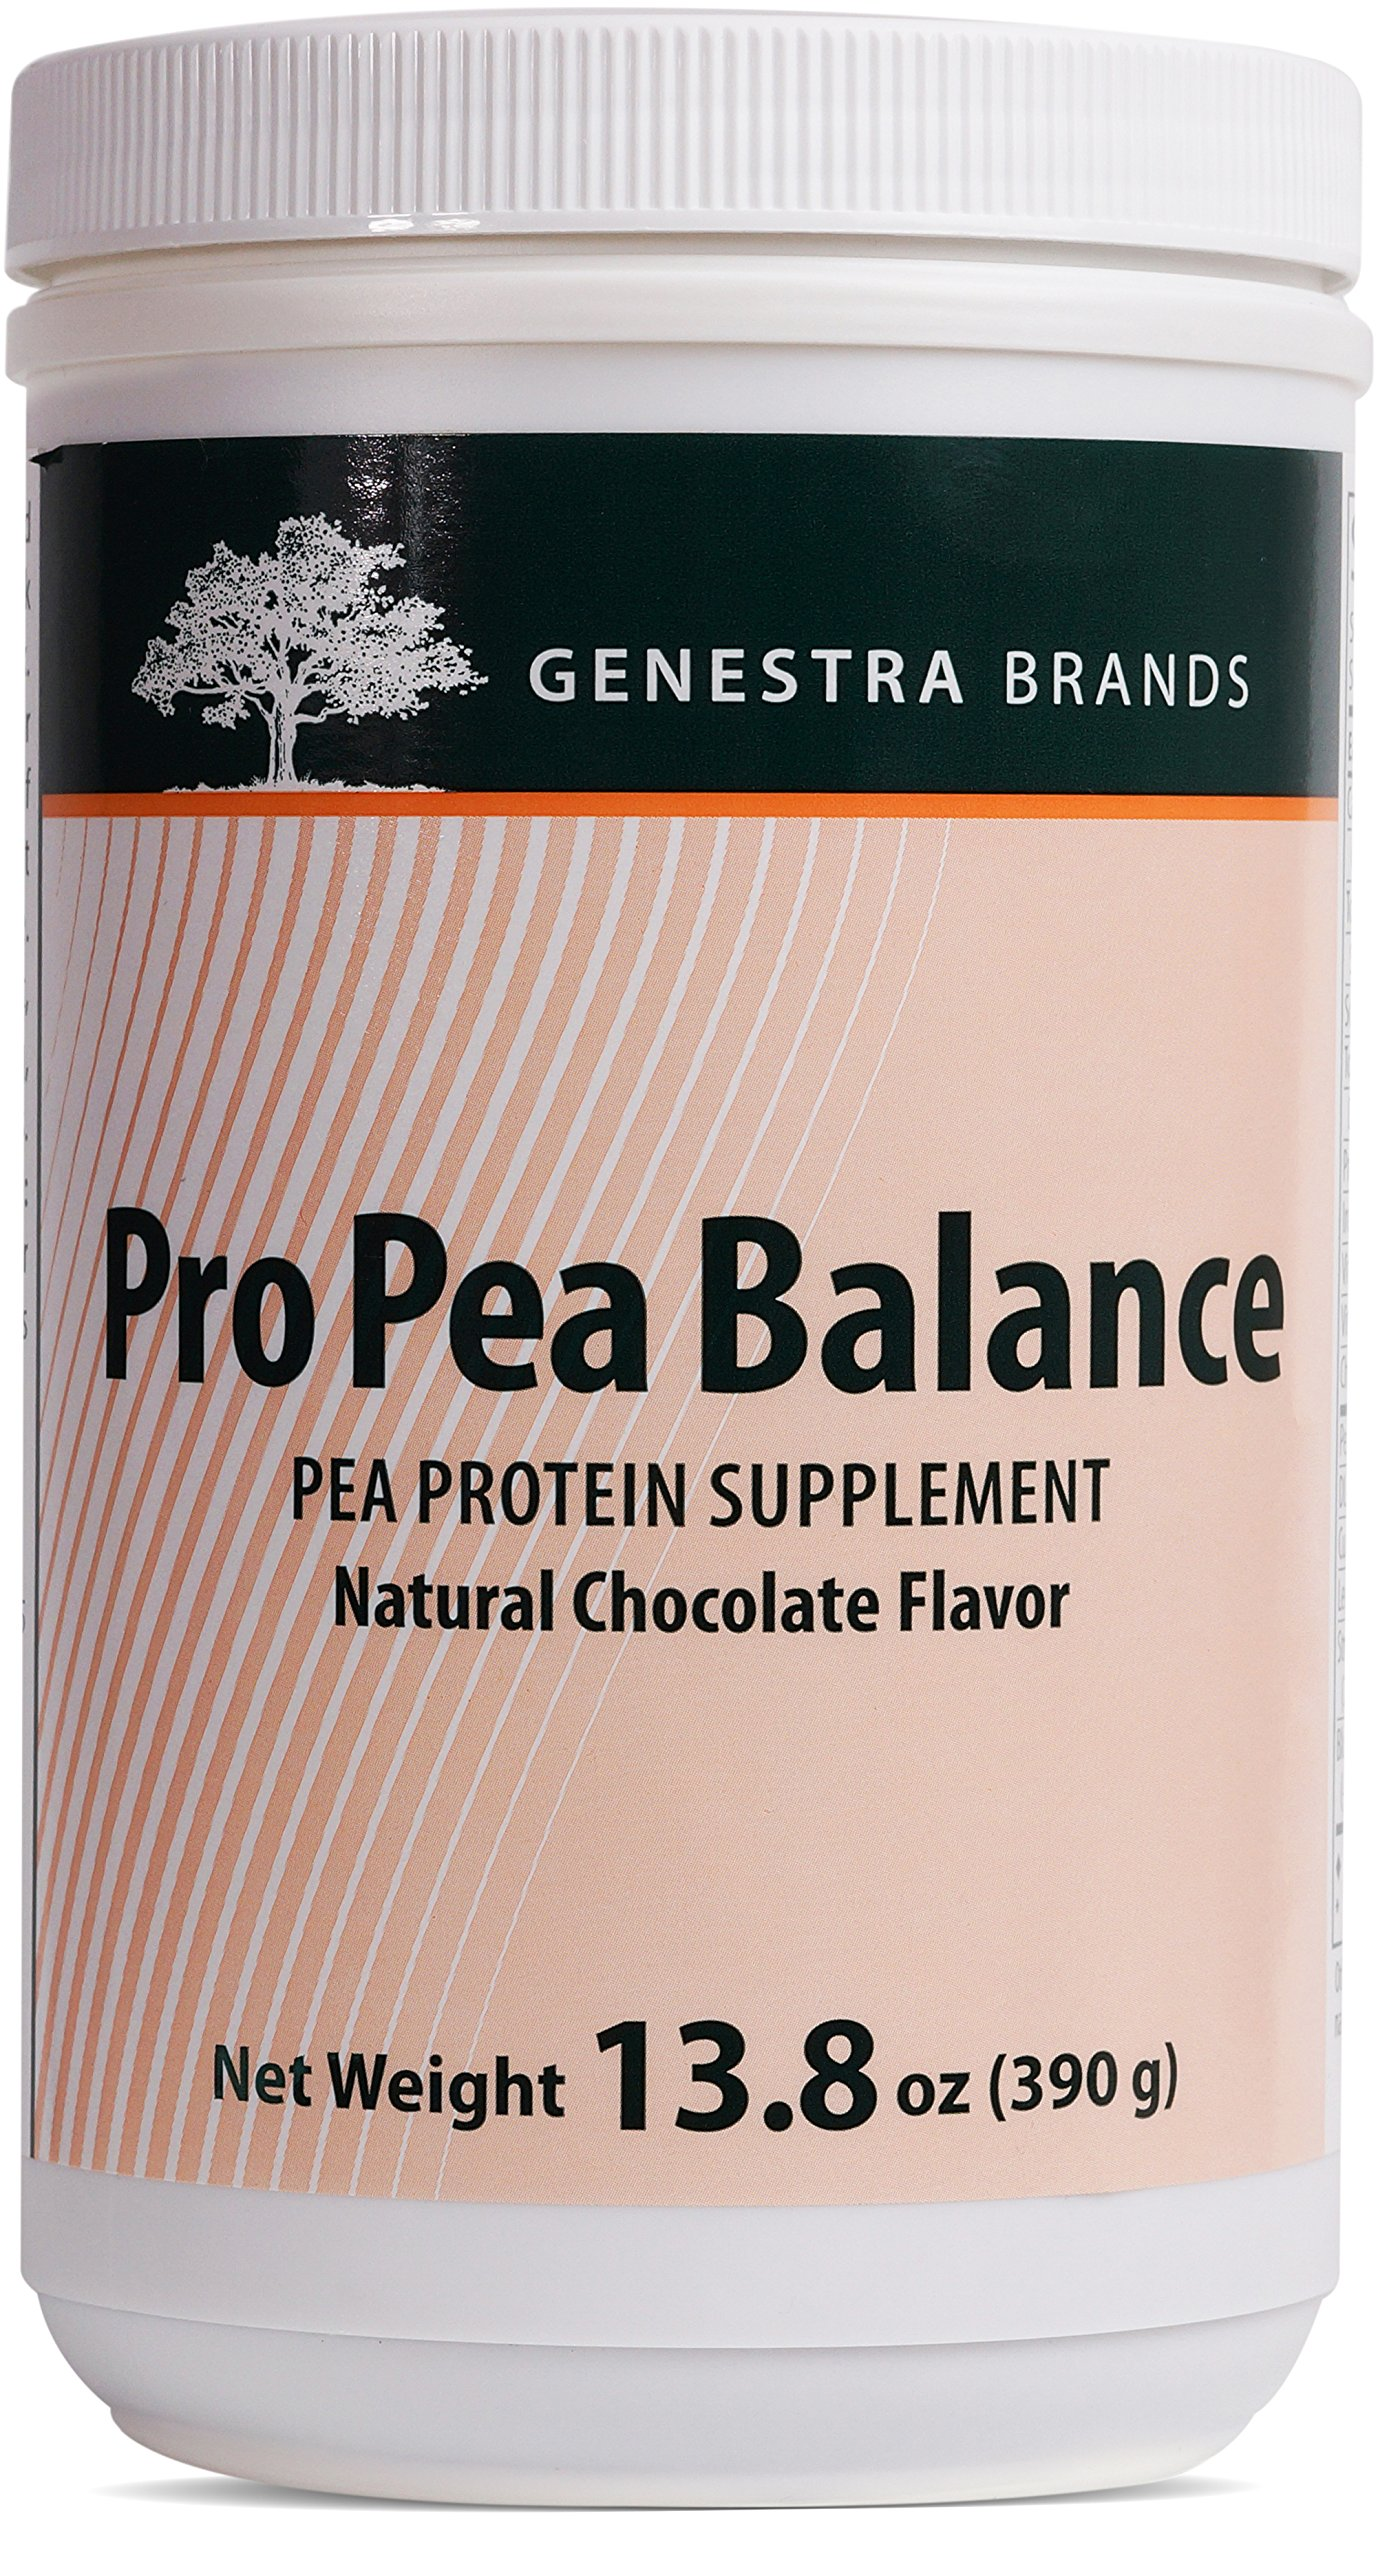 Genestra Brands - Pro Pea Balance - Pea Protein Supplement (Chocolate Flavor) - 13.8 oz.